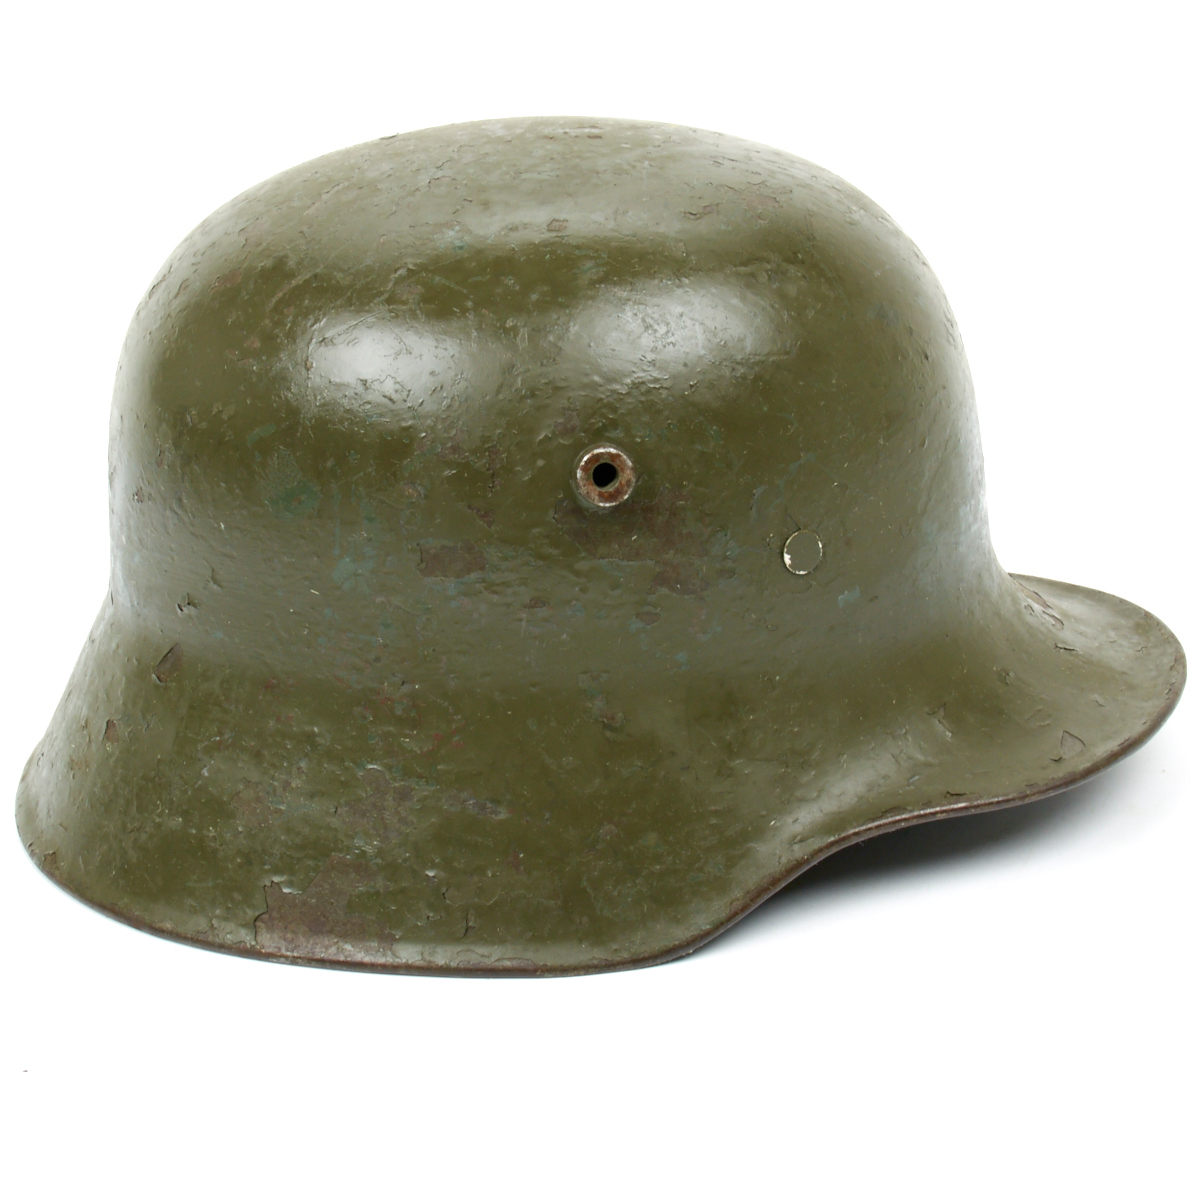 Strahlhelm Details About Original Imperial German Wwi M18 Stahlhelm Helmet Shell Size 66